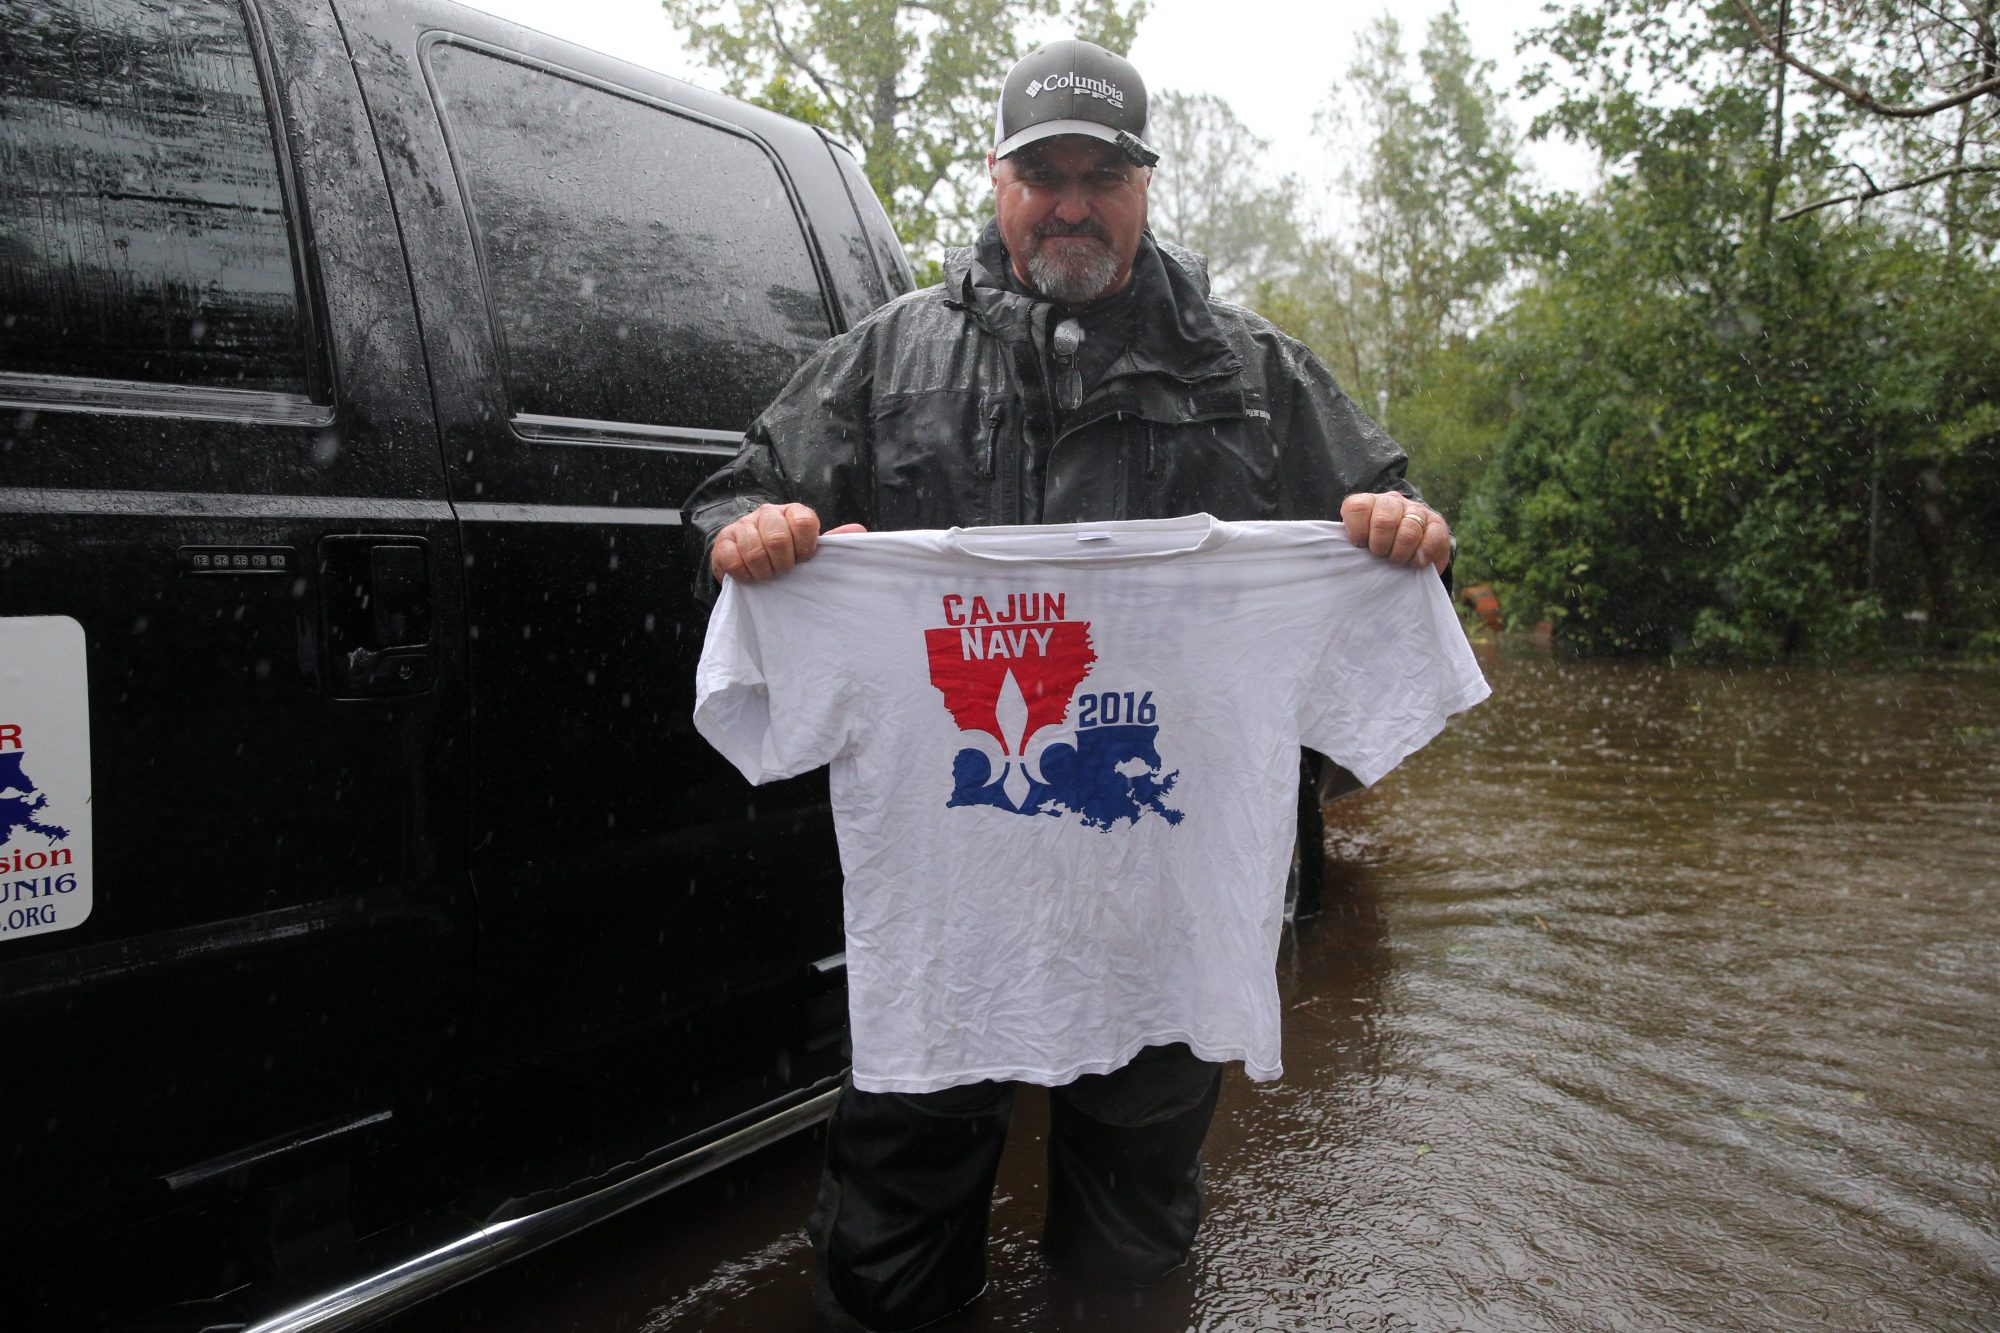 Cajun Navy Member During Hurricane Florence